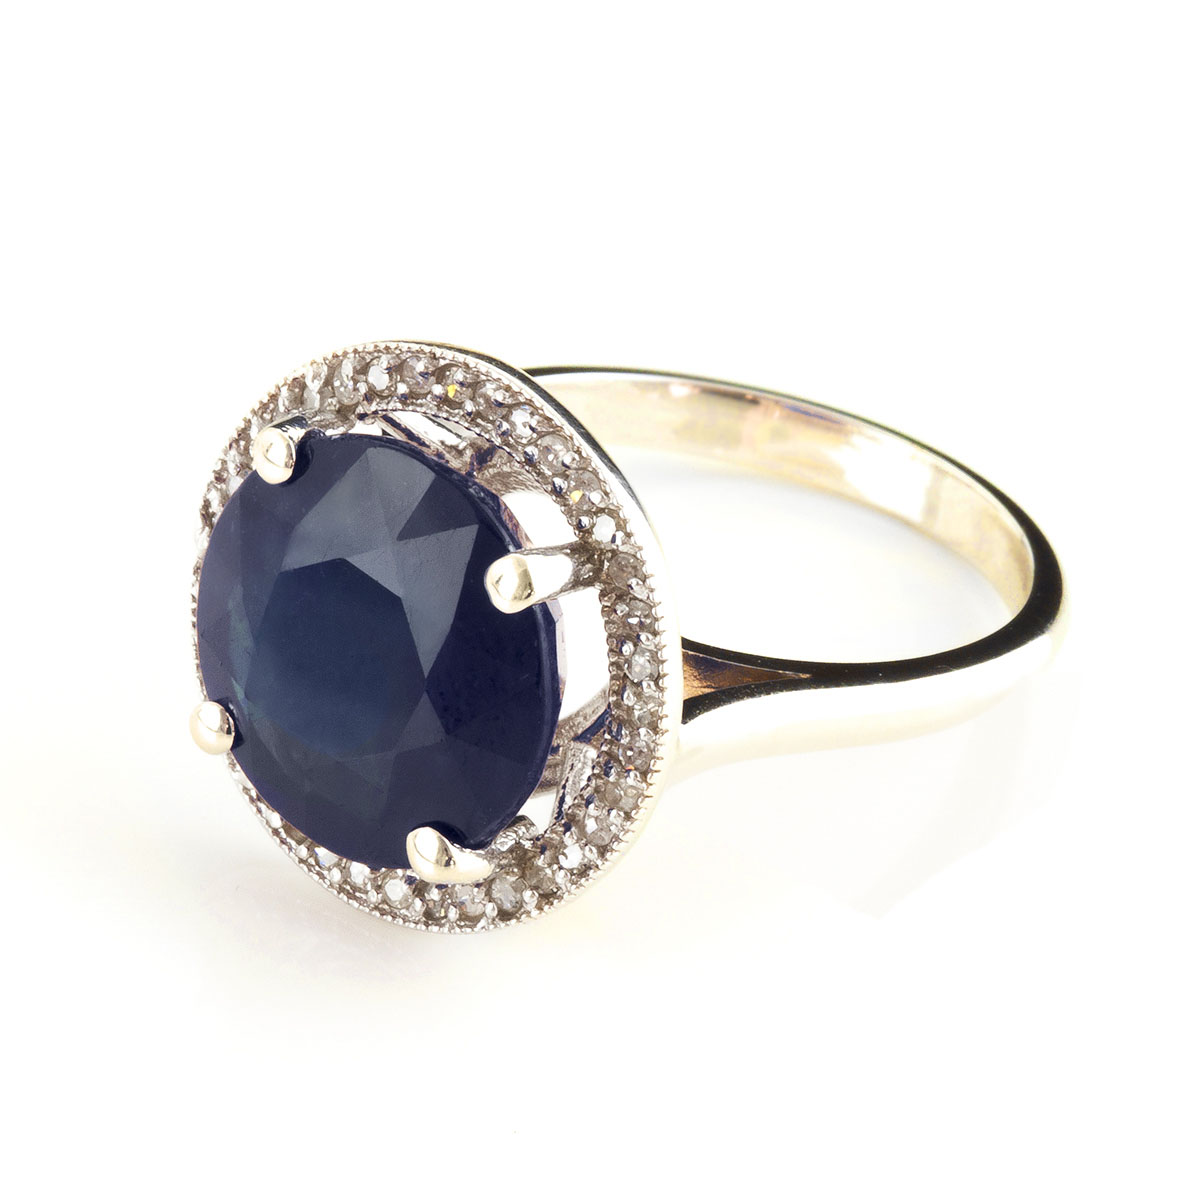 Sapphire & Diamond Halo Ring in 9ct Gold